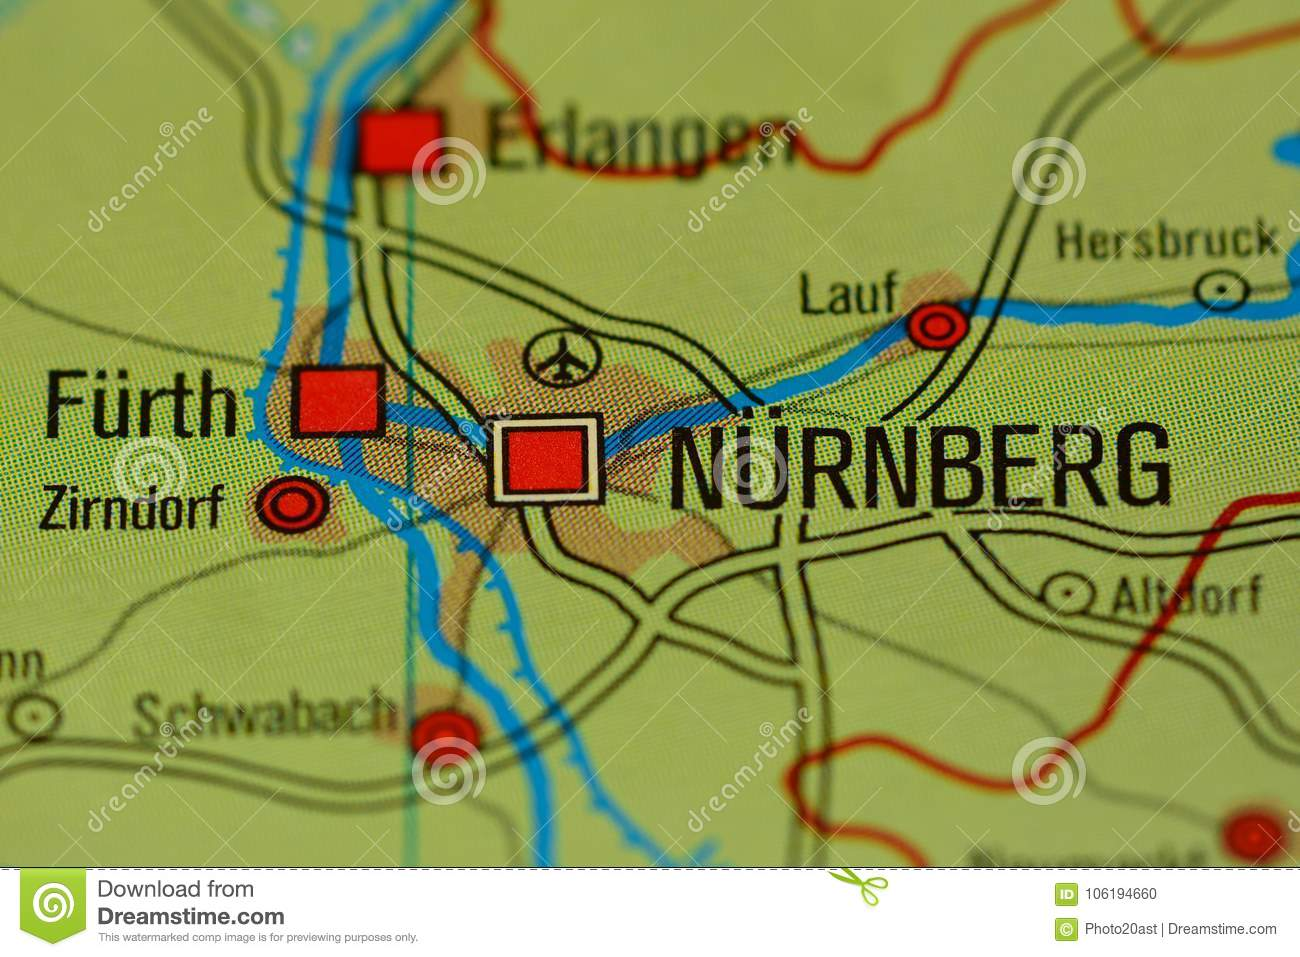 Map Of Zirndorf Germany.The Word Nurnberg Nuremberg On The Map Stock Photo Image Of